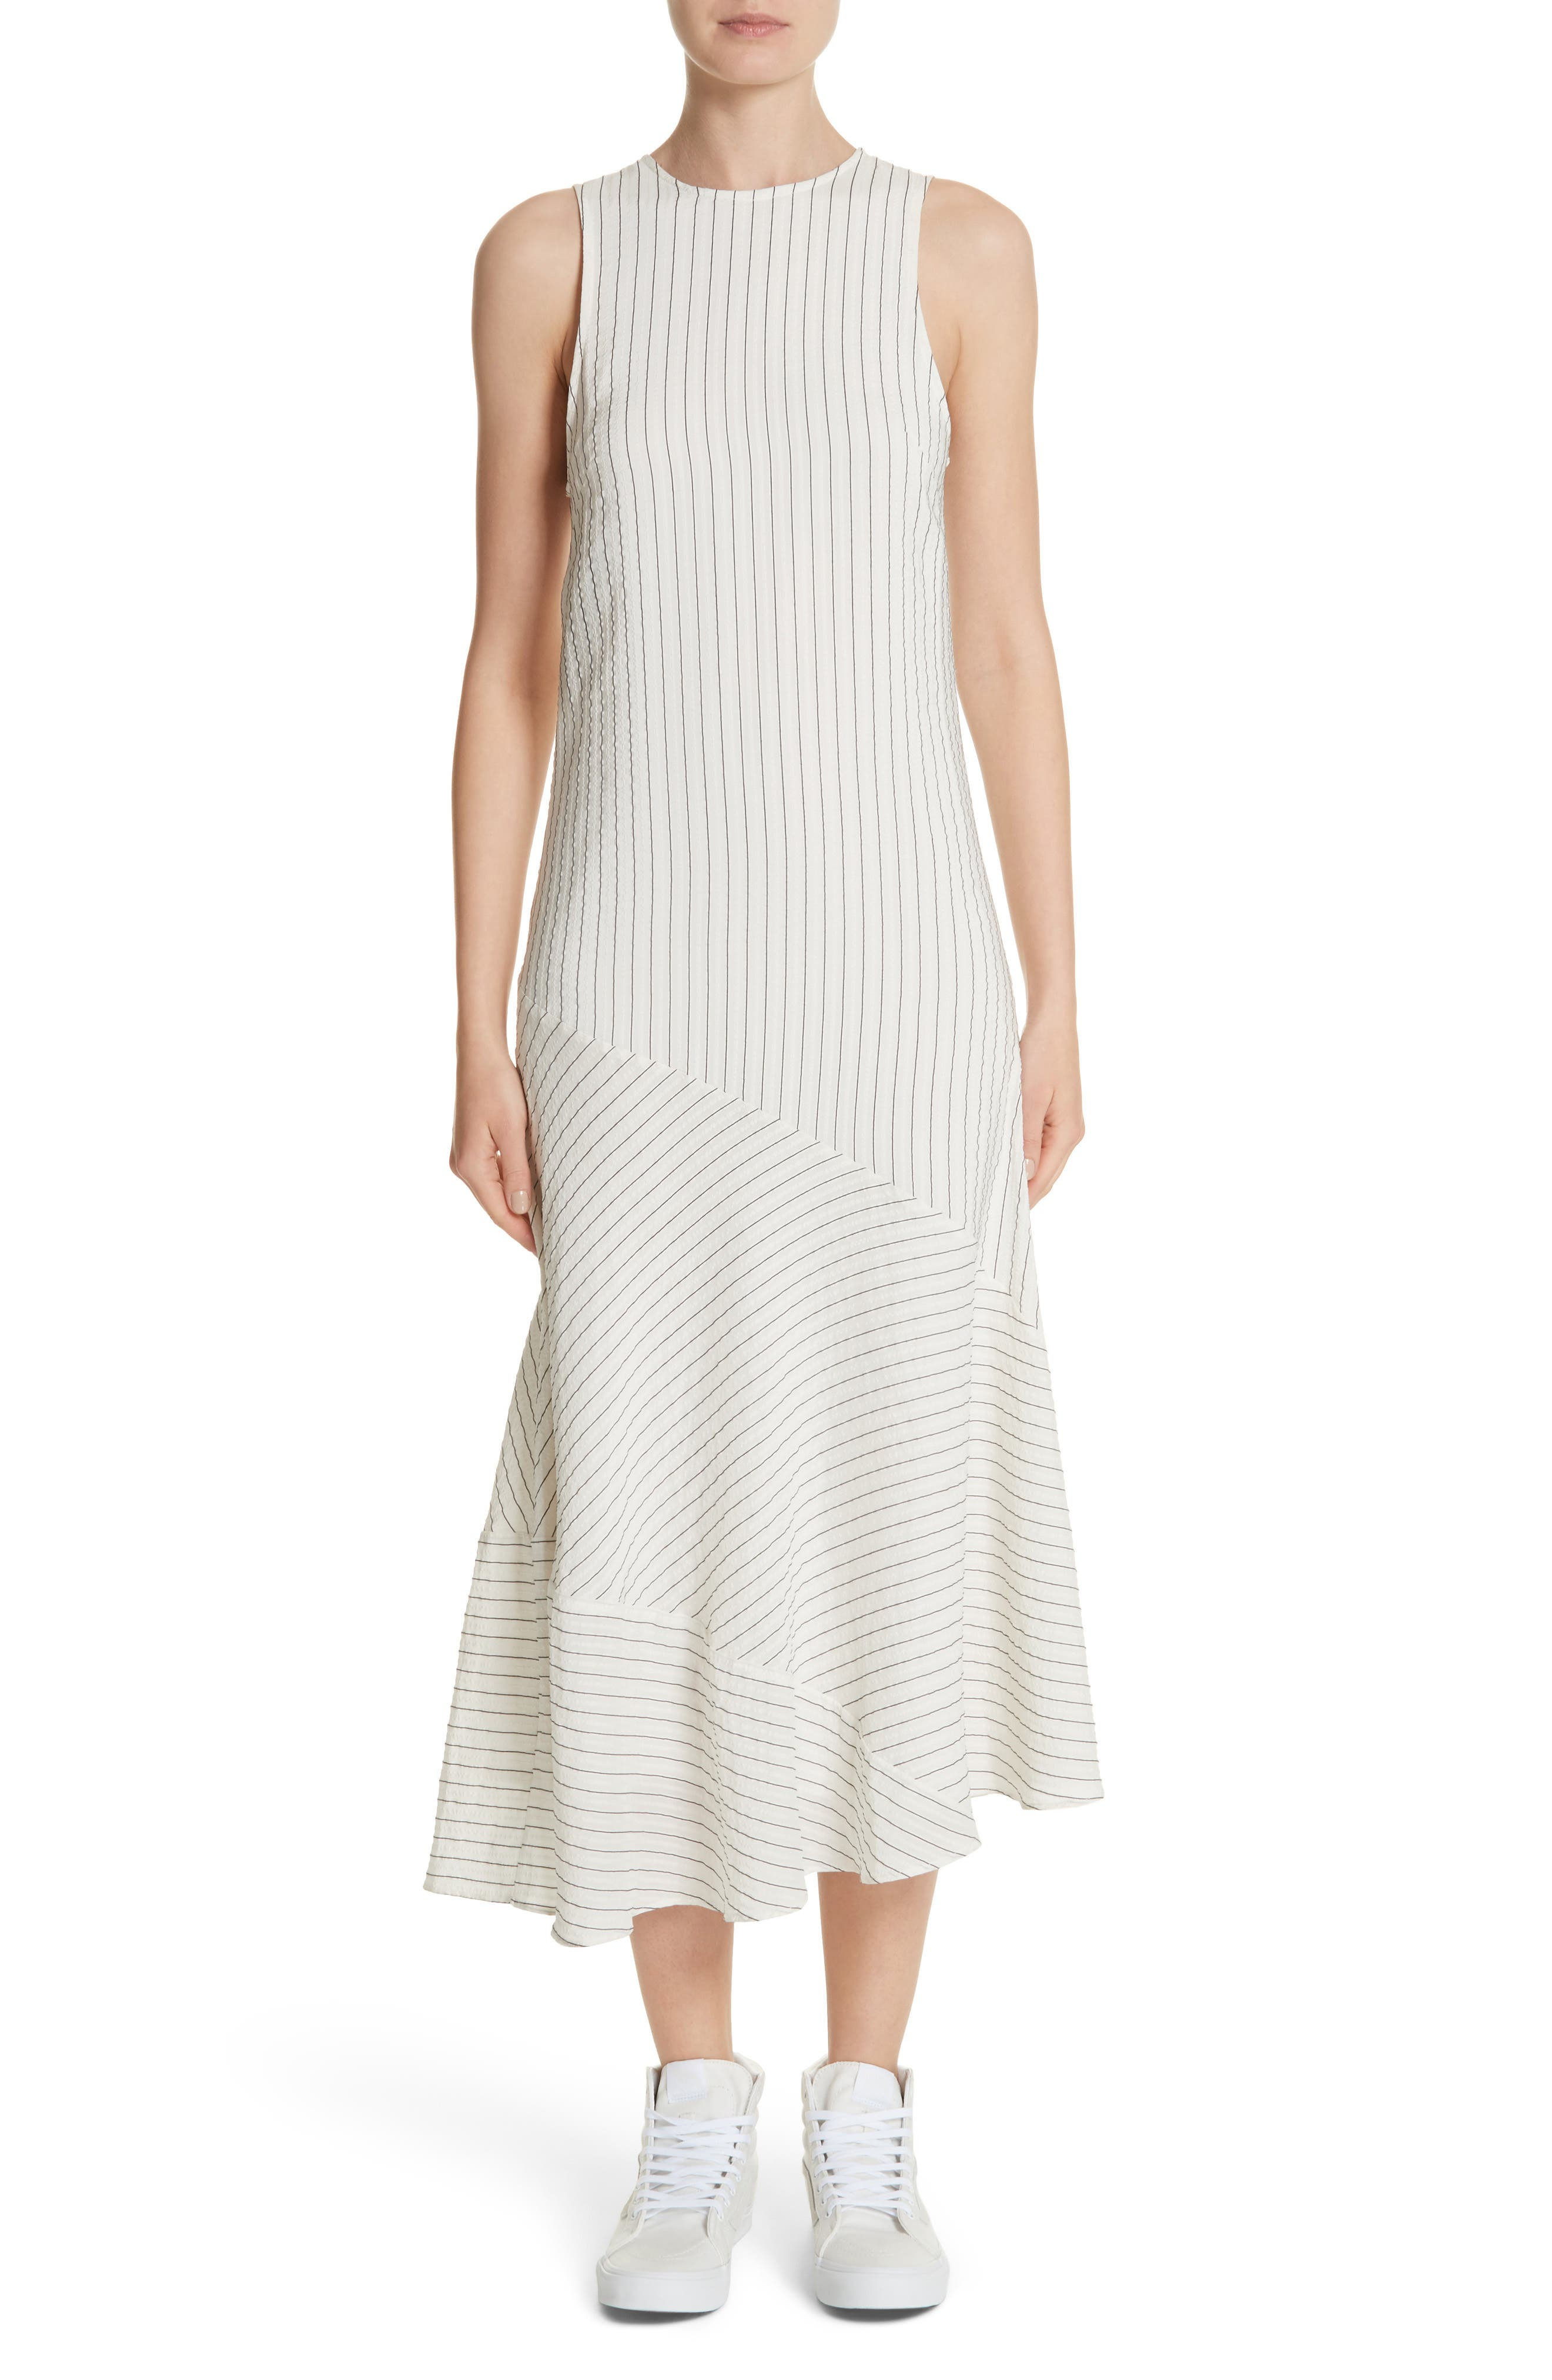 Wilkie Seersucker Striped Sheath Dress,                         Main,                         color, 900